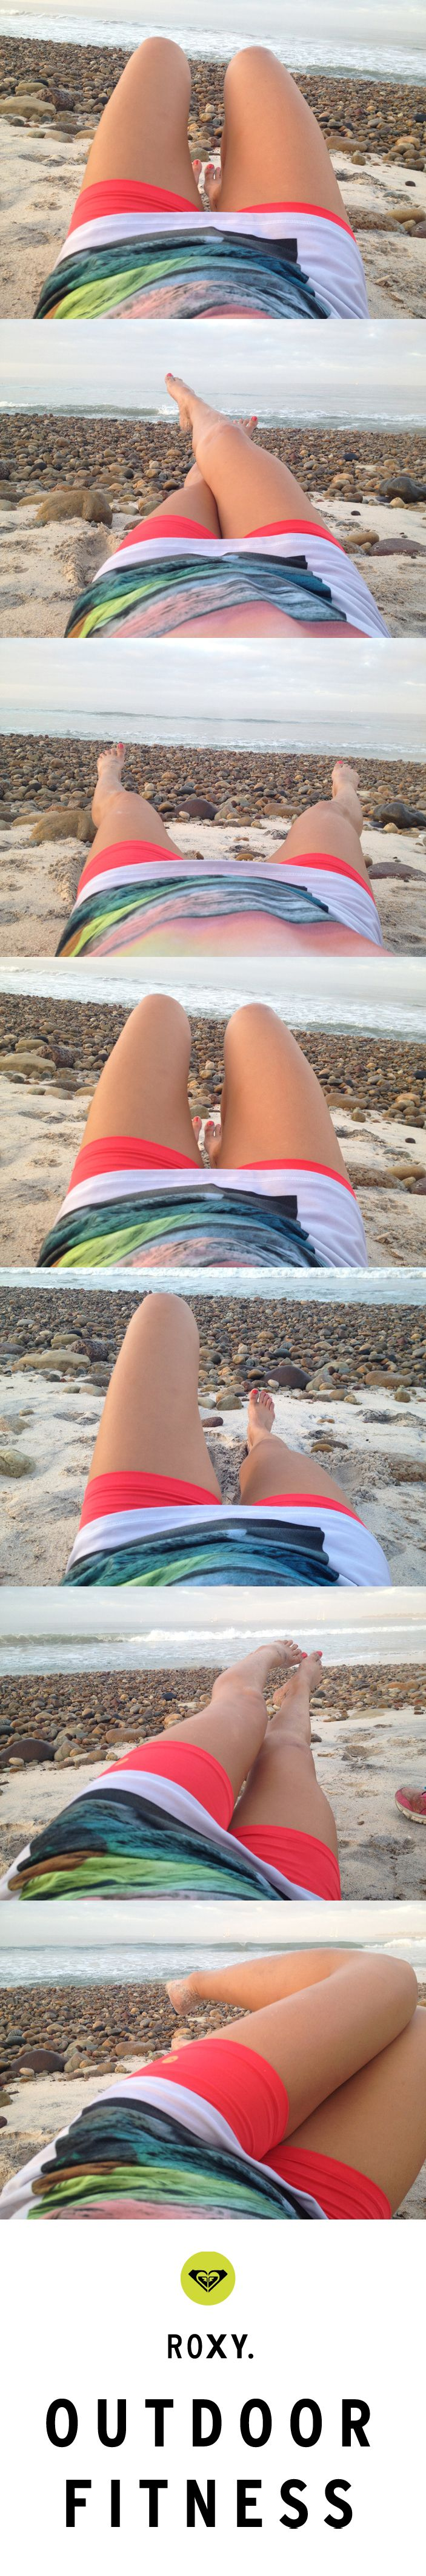 PIN THIS!  #ROXYOutdoorFitness inspo & easy how-to for getting BEACH ABS on the BEACH....